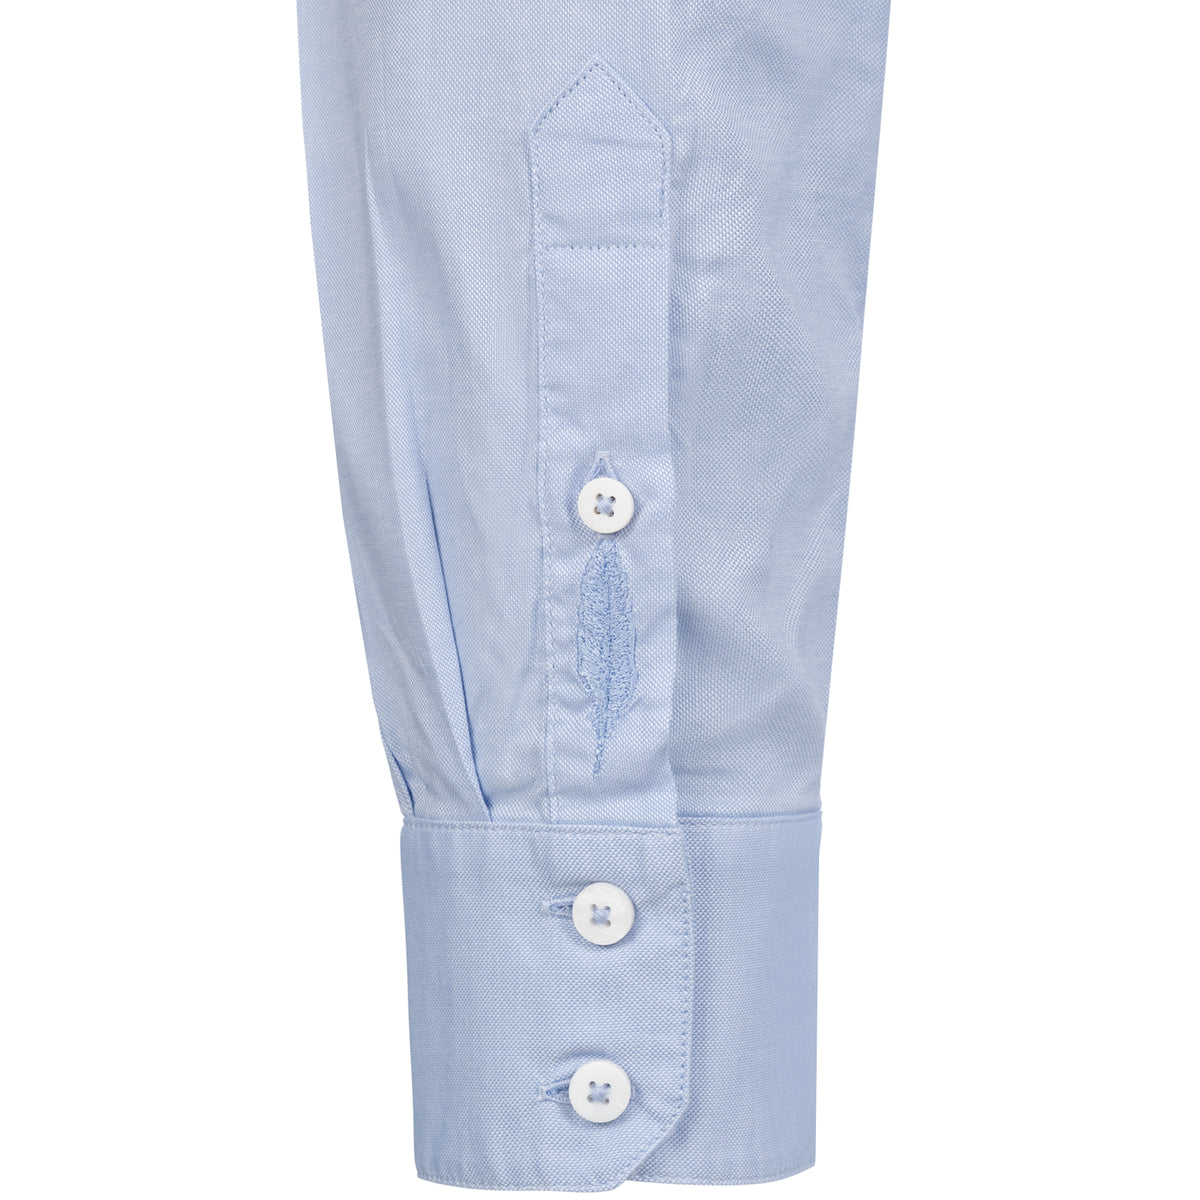 Vintage Oxford Tailored Shirt